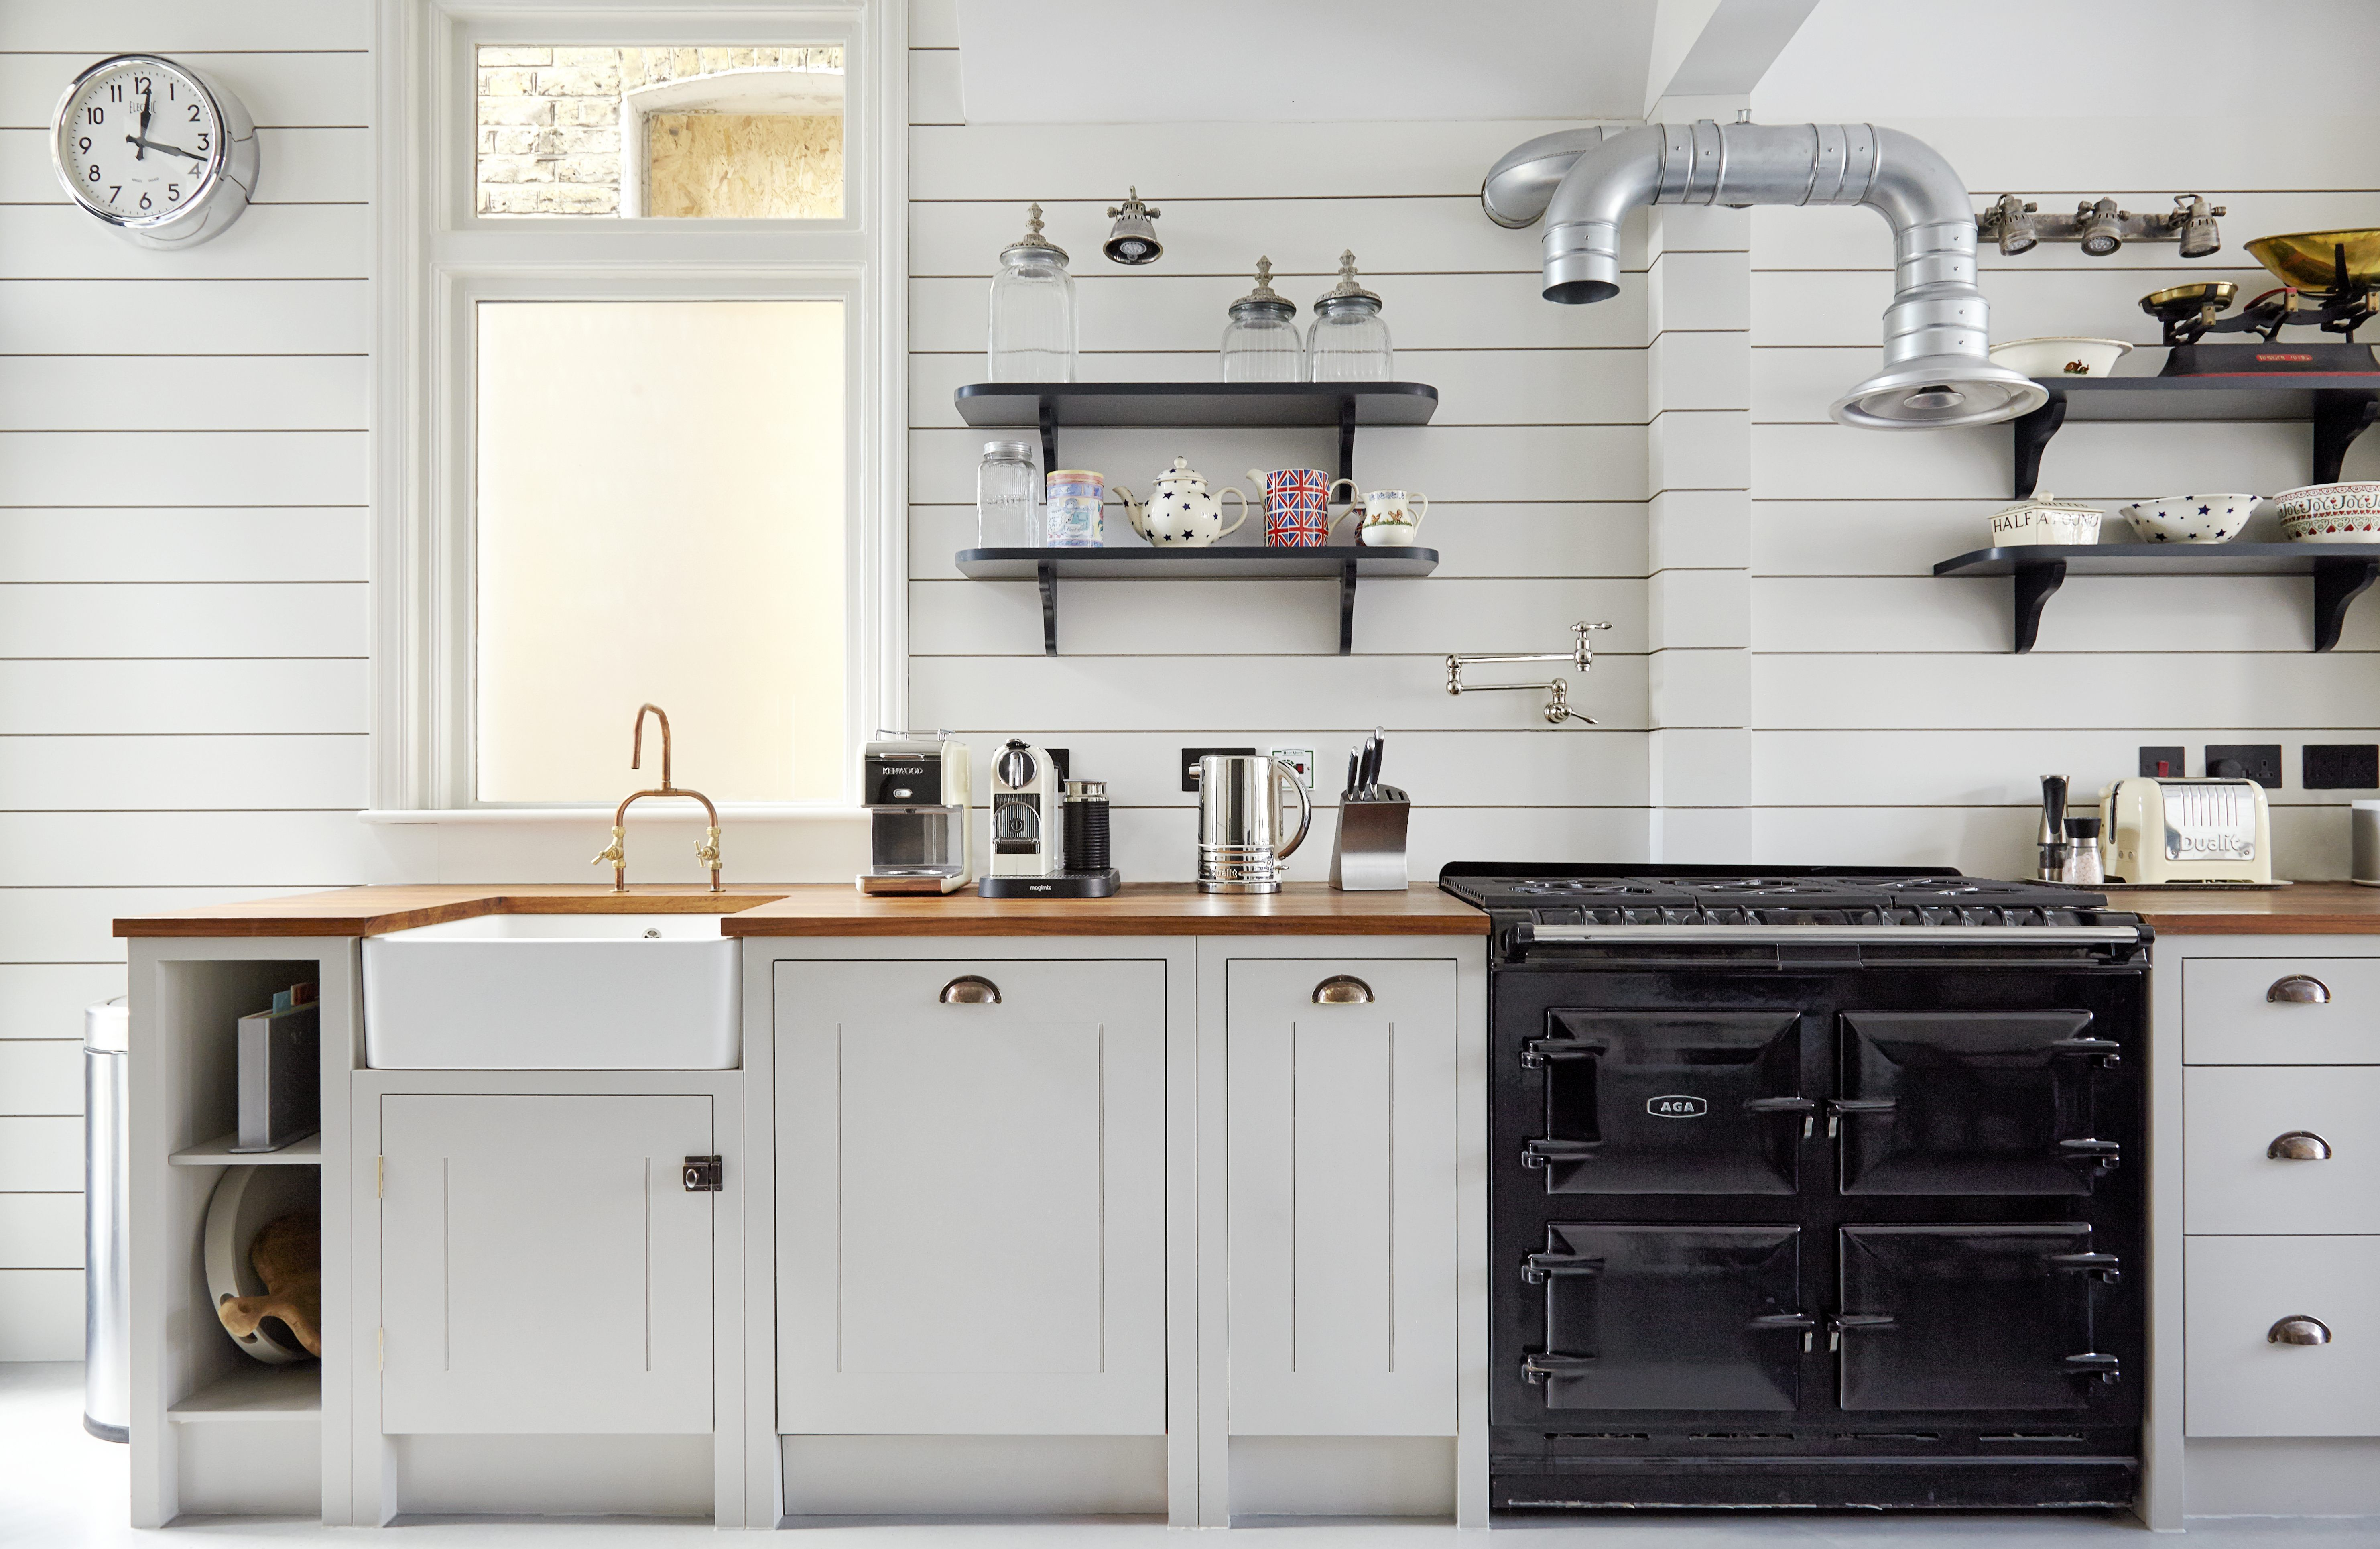 Shiplap wood paneling in a classic English kitchen remodel ...